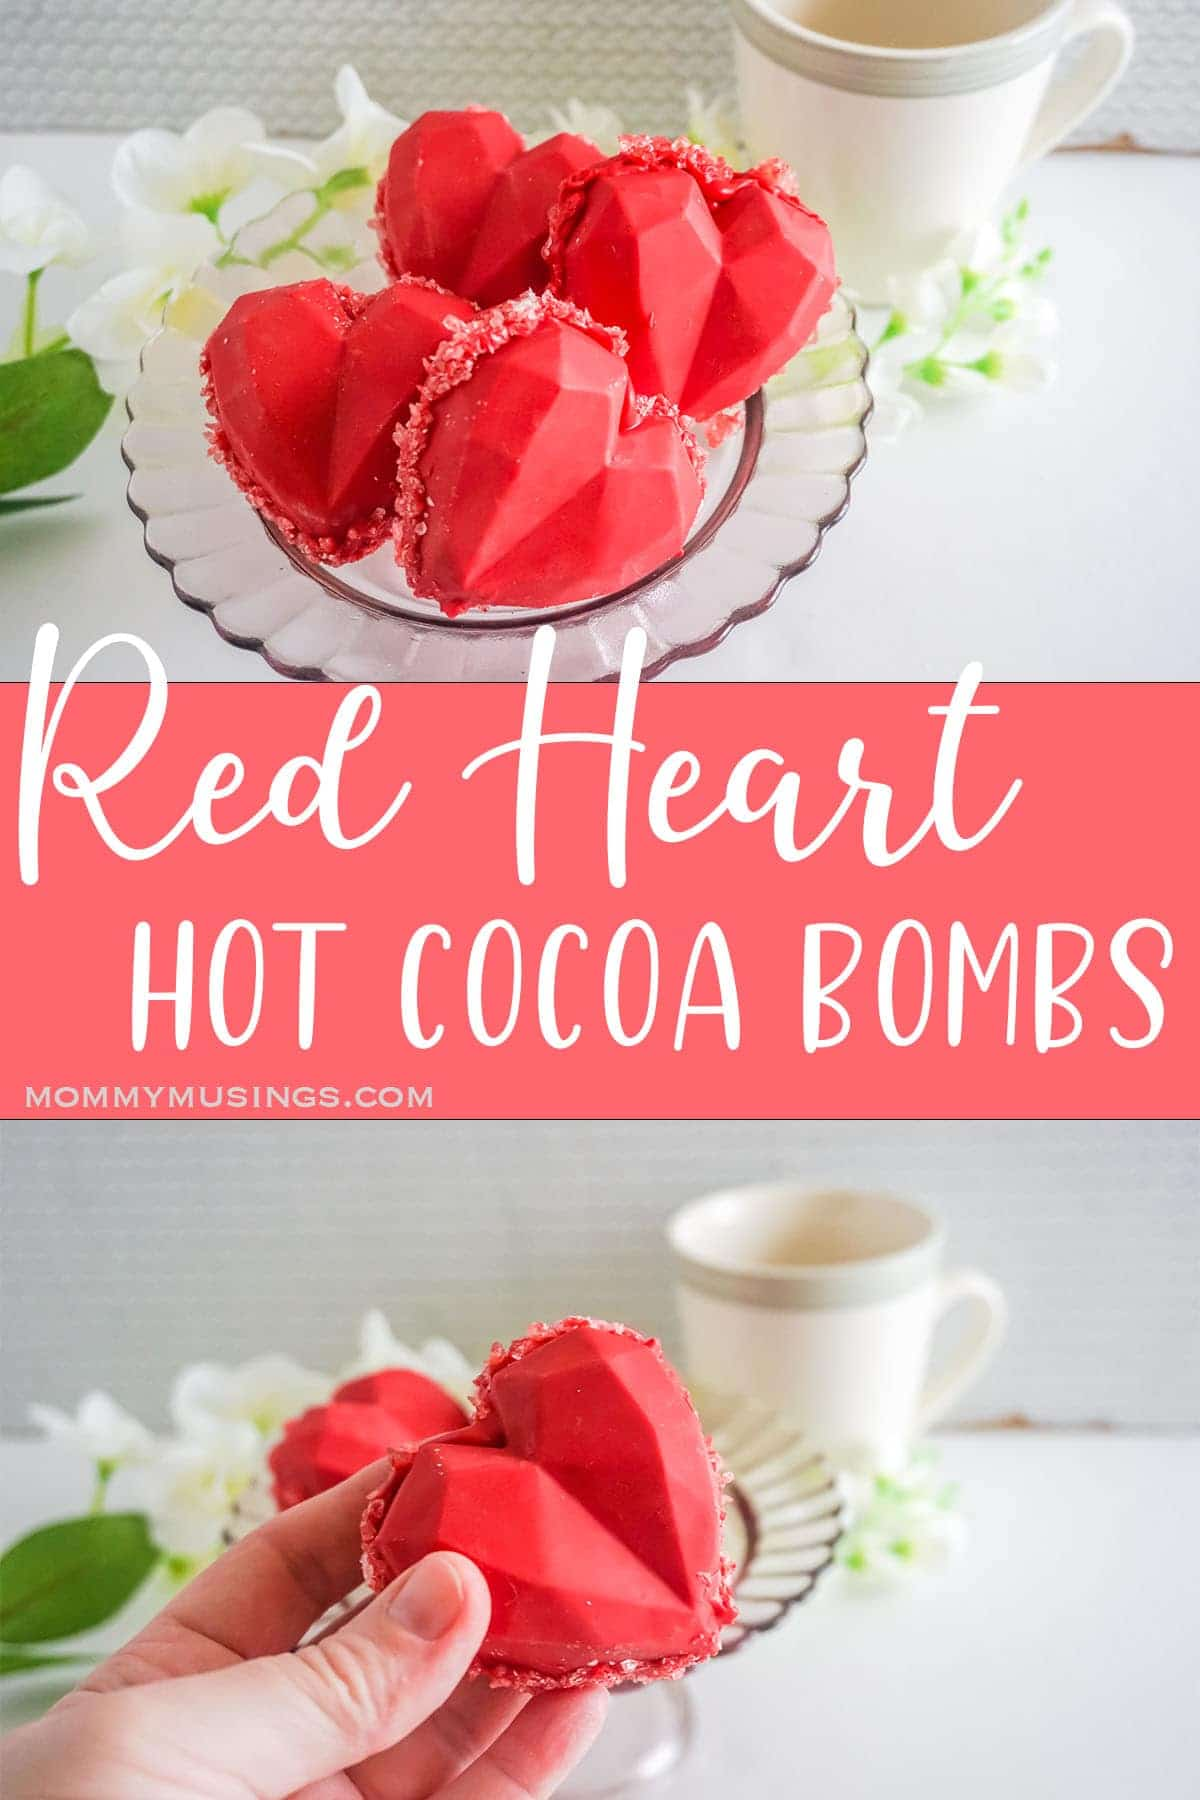 photo collage of heart shaped hot cocoa bombs with text which reads Red Heart Hot Cocoa Bombs